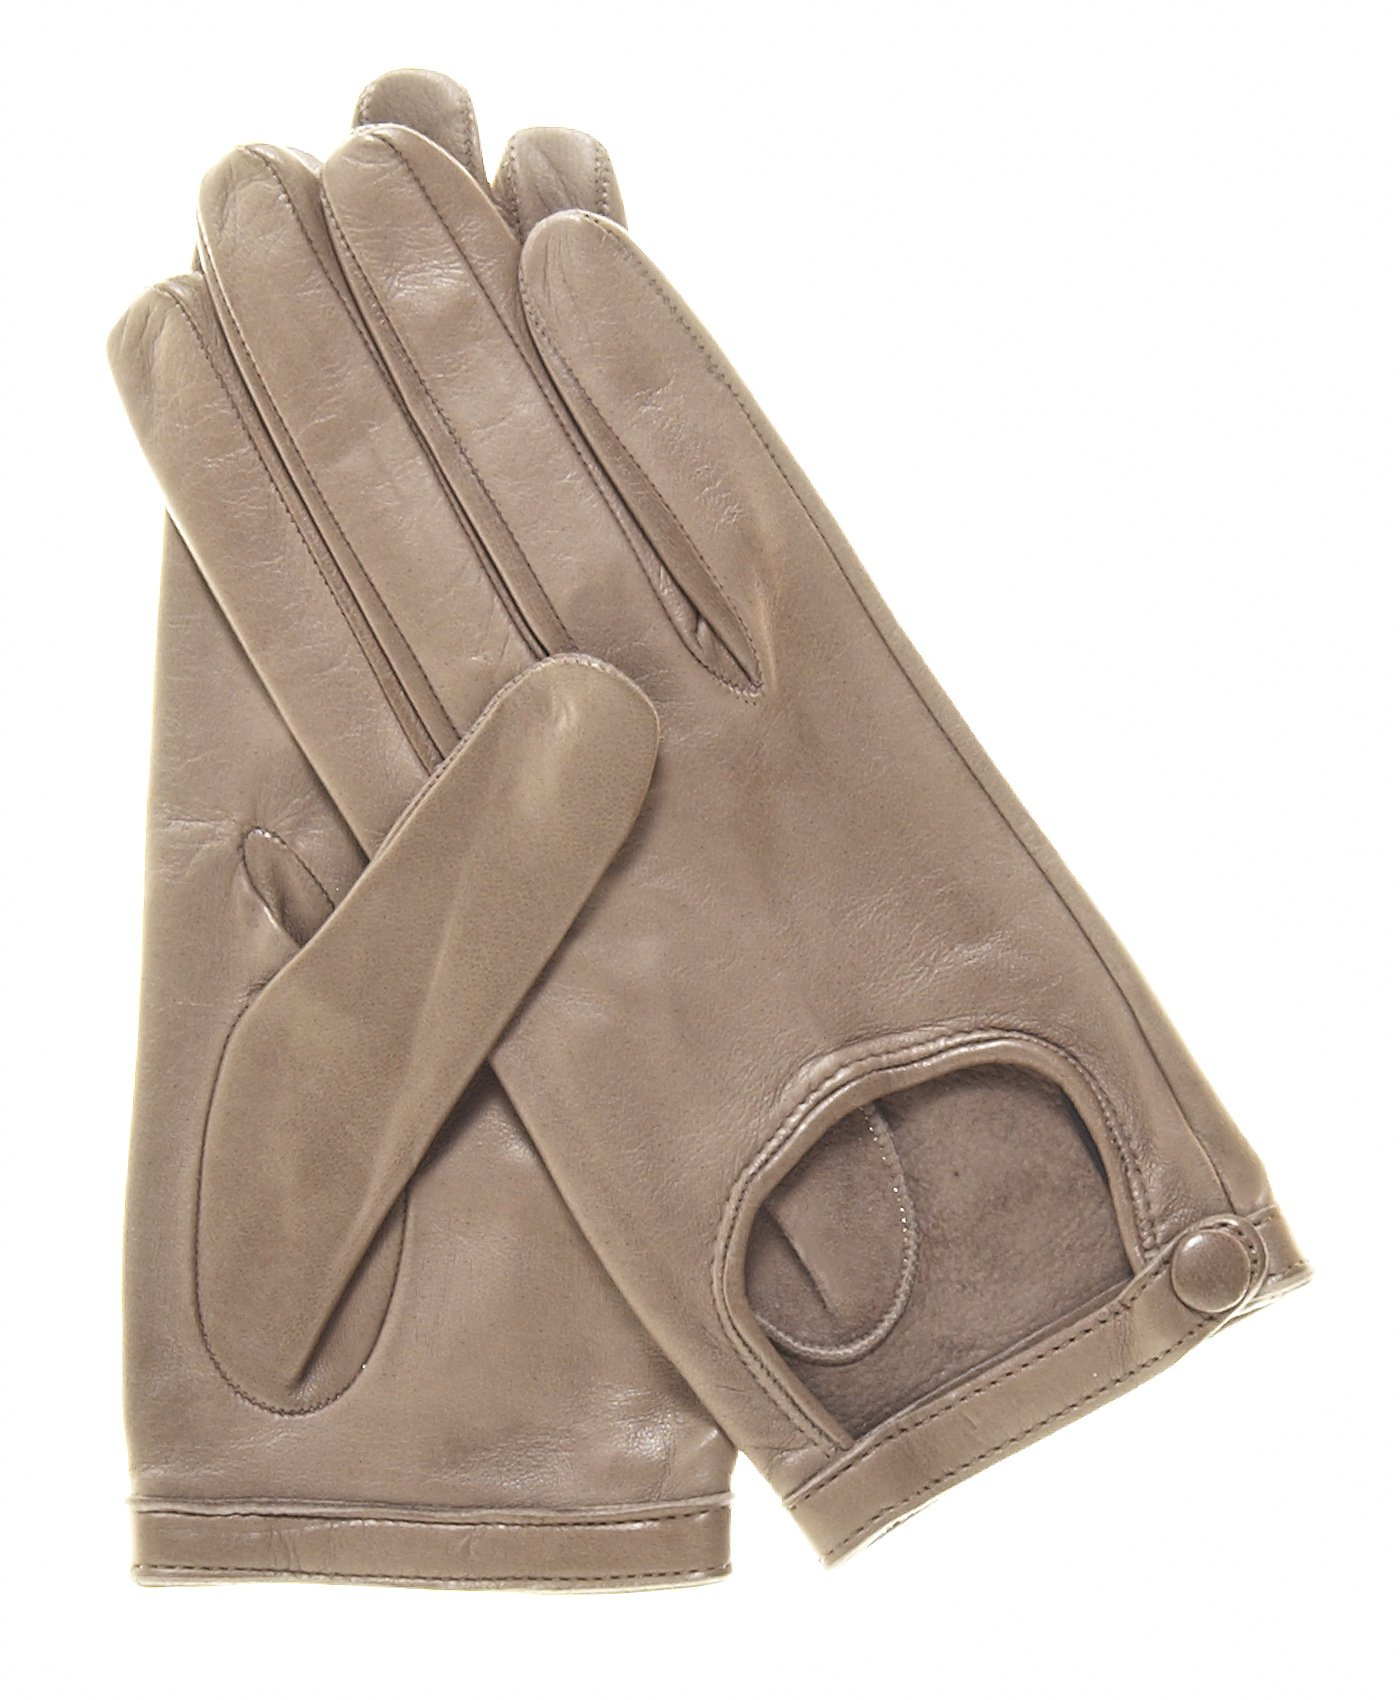 Fratelli Orsini Women's Classico Italian Lambskin Driving Gloves Size 7 1/2 Color Taupe